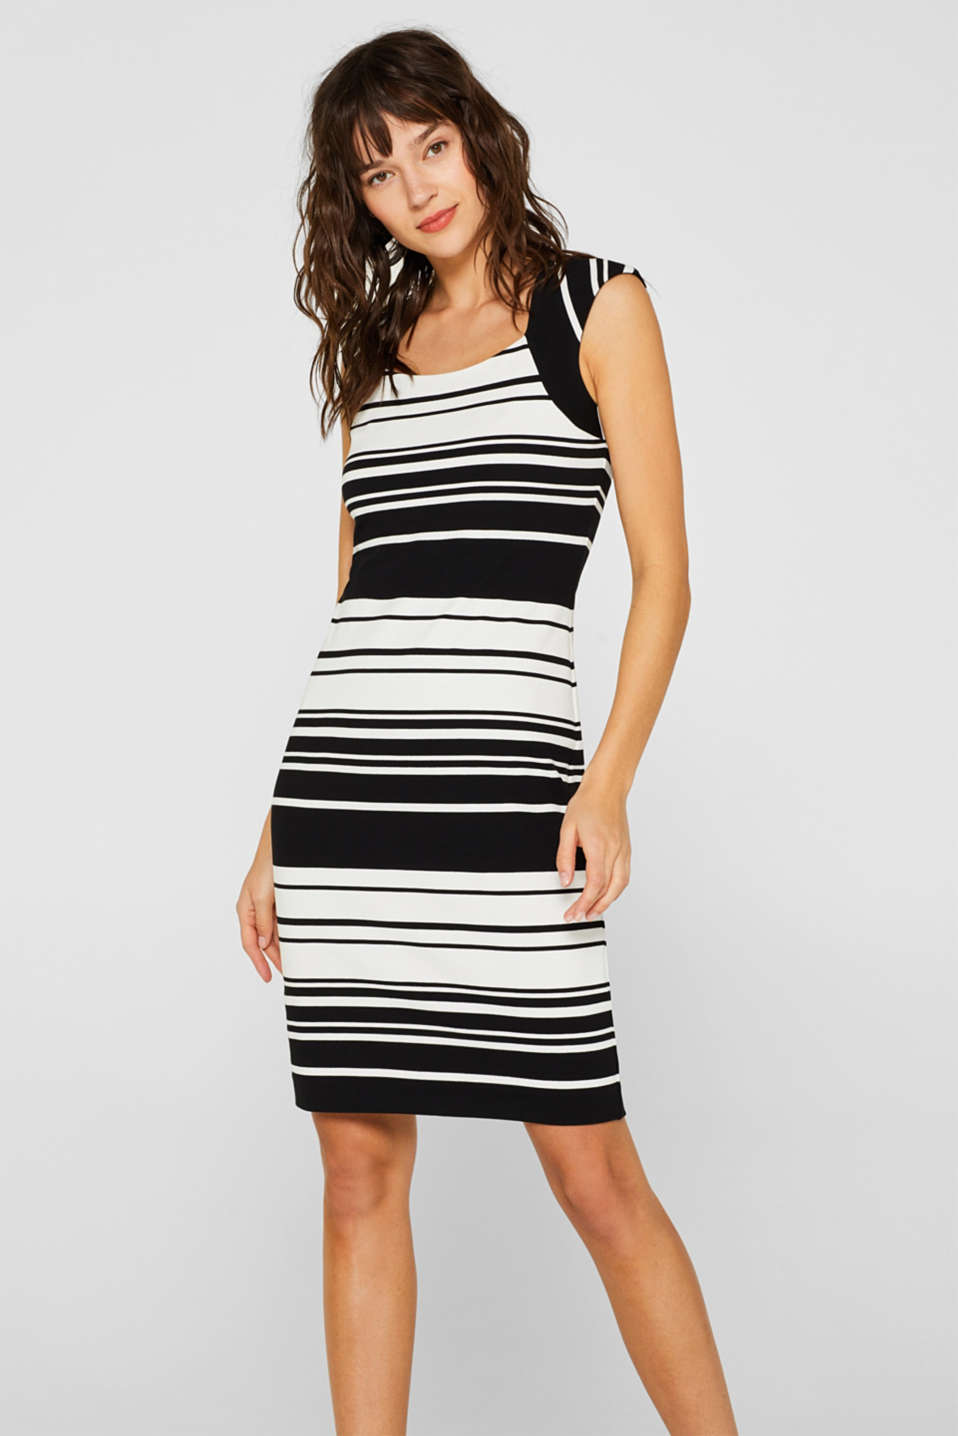 Sheath dress in jersey with stretch for comfort